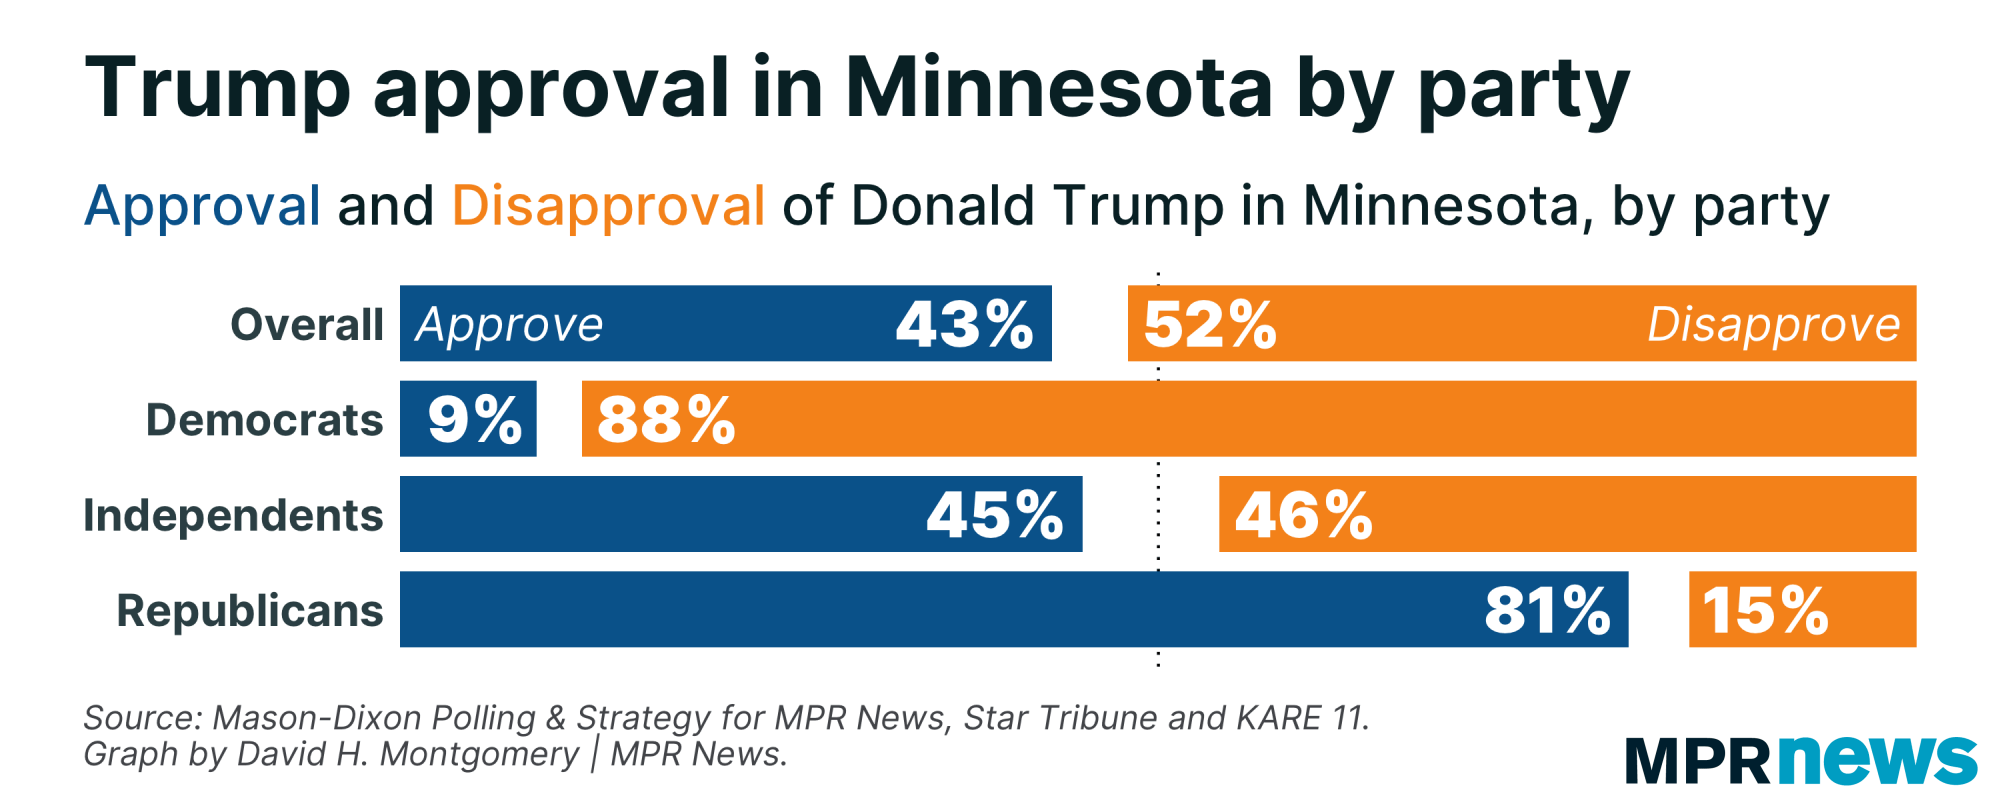 Poll question on Donald Trump's approval rating in MN by party